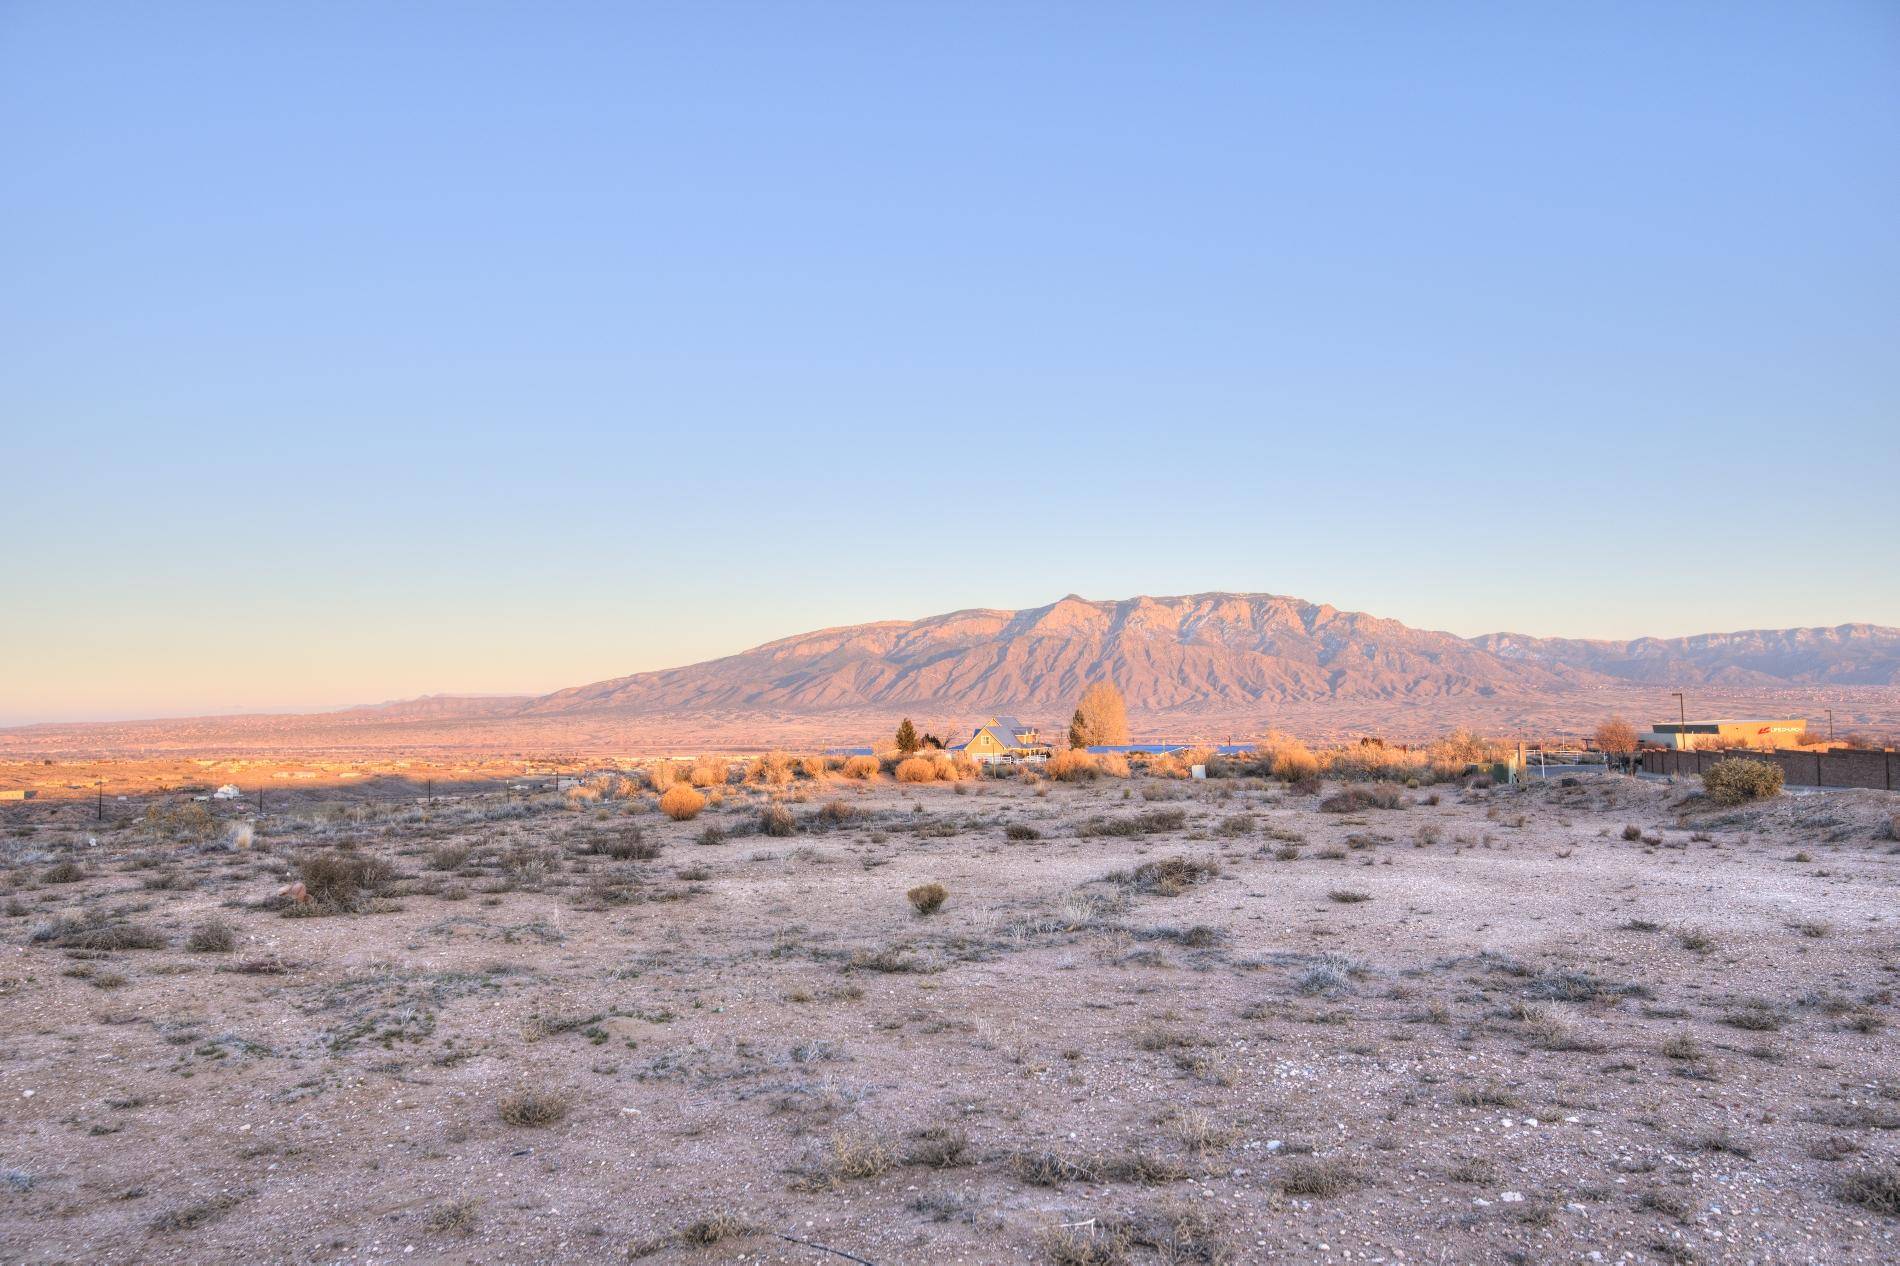 Fantastic 2 acre building lot situated with phenomenal views to the Jemez, Santa Fe, and the Sandia Mountains. Don't miss this opportunity to be so close in, yet have plenty of room to spread out and with a great home site. The VIEWS are forever unobstructed. Situated next to gorgeous new home! Really lovely land and location. A must see!